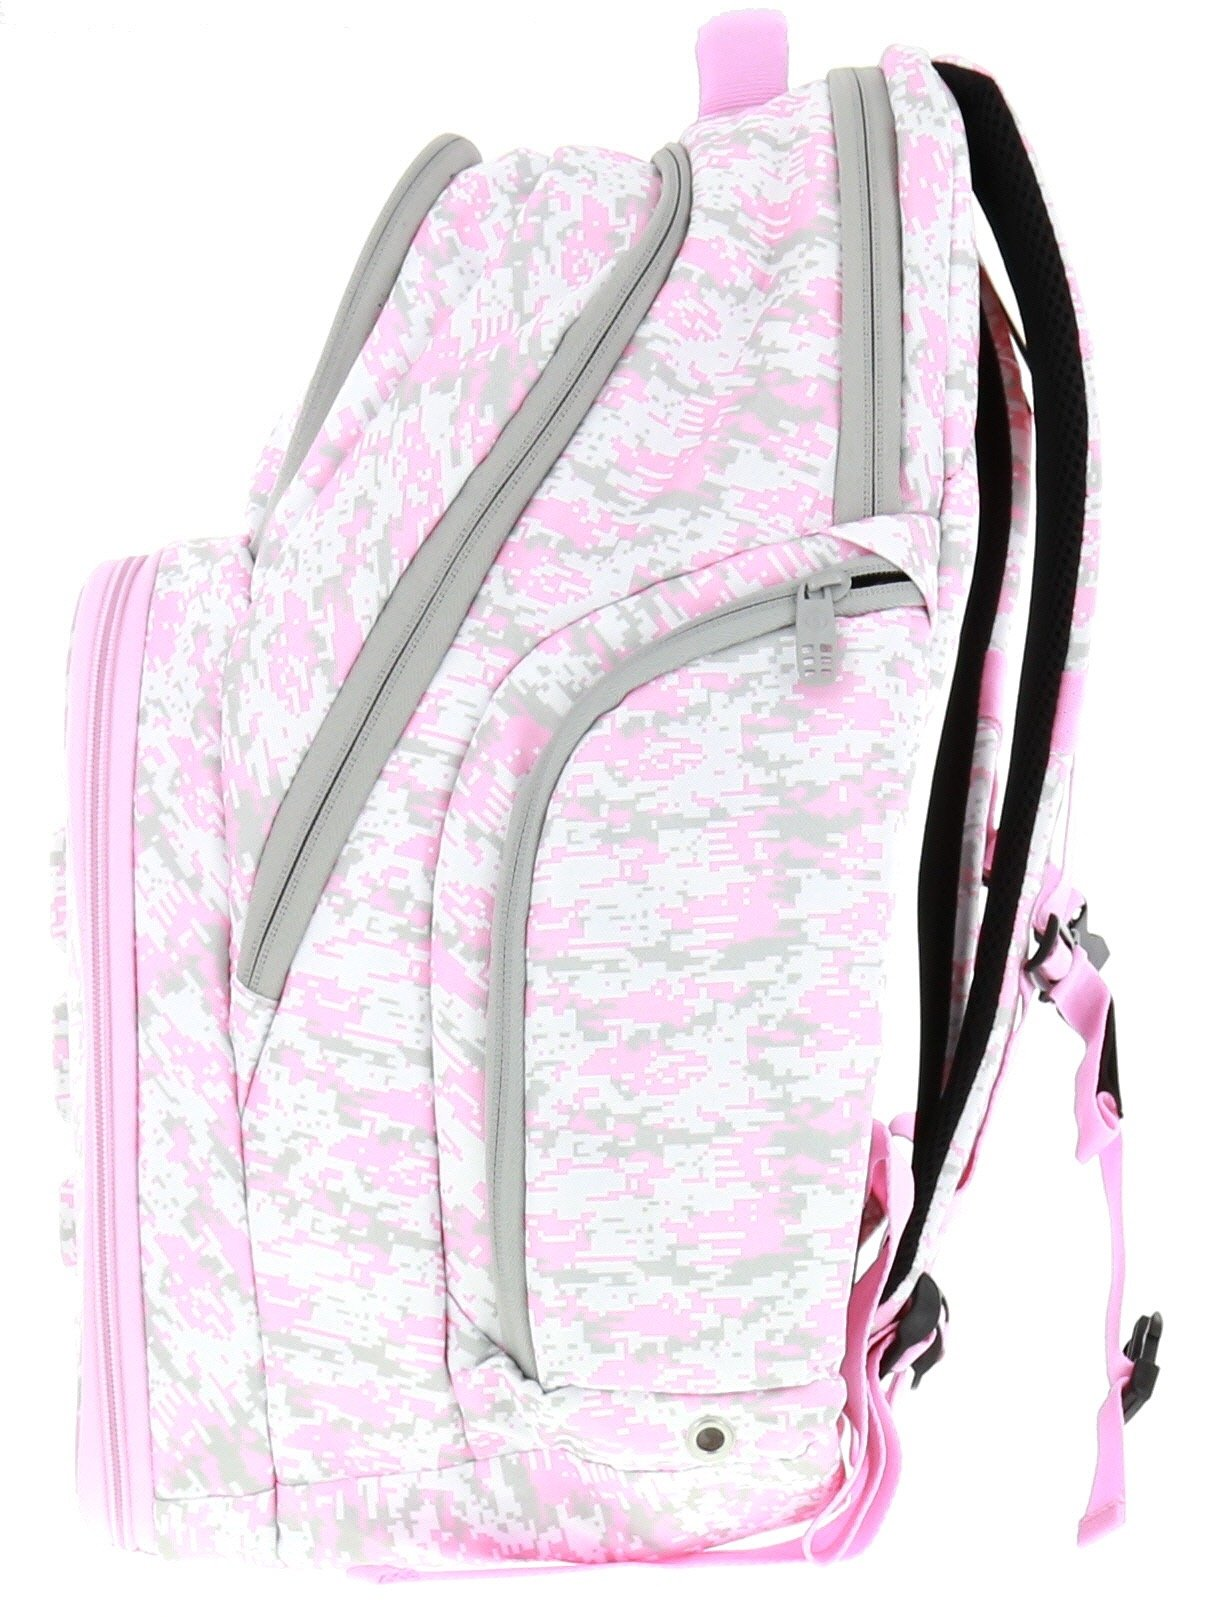 6 Pack Fitness Expedition Backpack W/ Removable Meal Management System 500 Pink & Grey Digital Camo w/ Bonus ZogoSportz Cyclone Shaker by 6 Pack Fitness (Image #6)